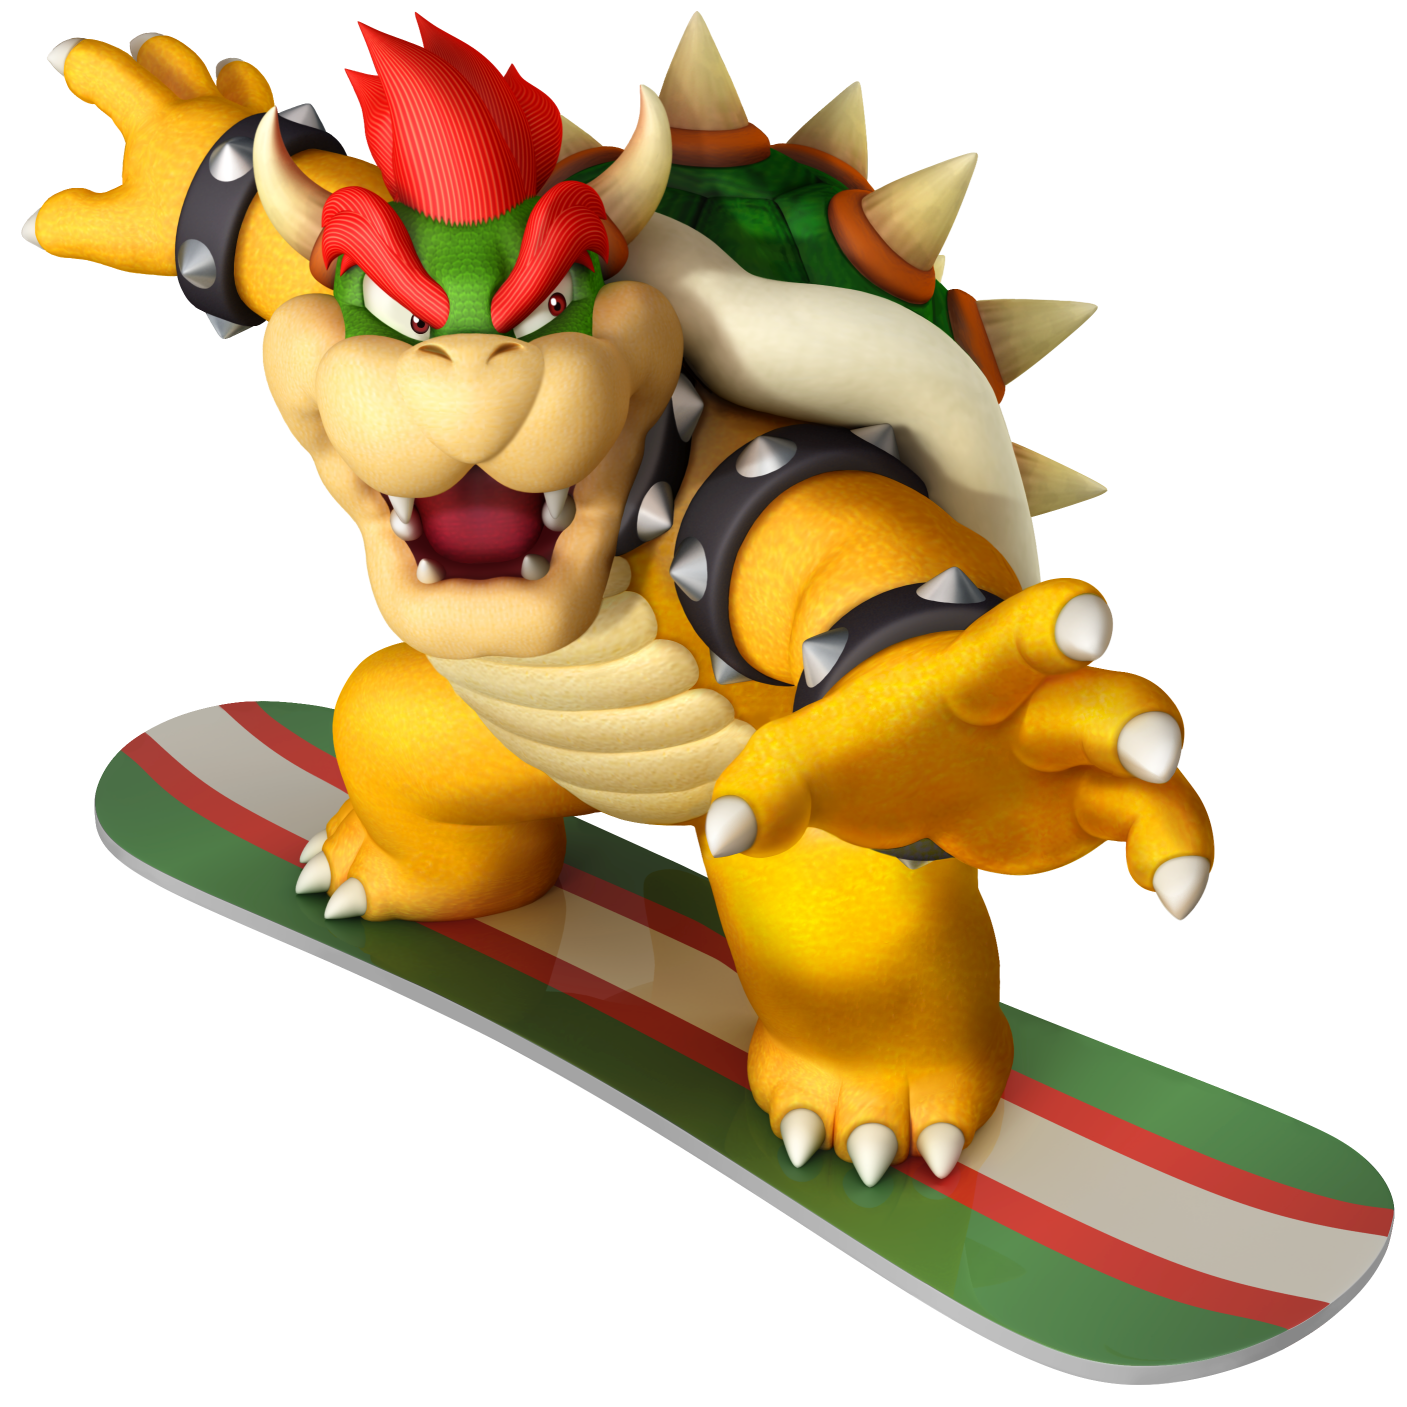 File:Bowser winter games.png